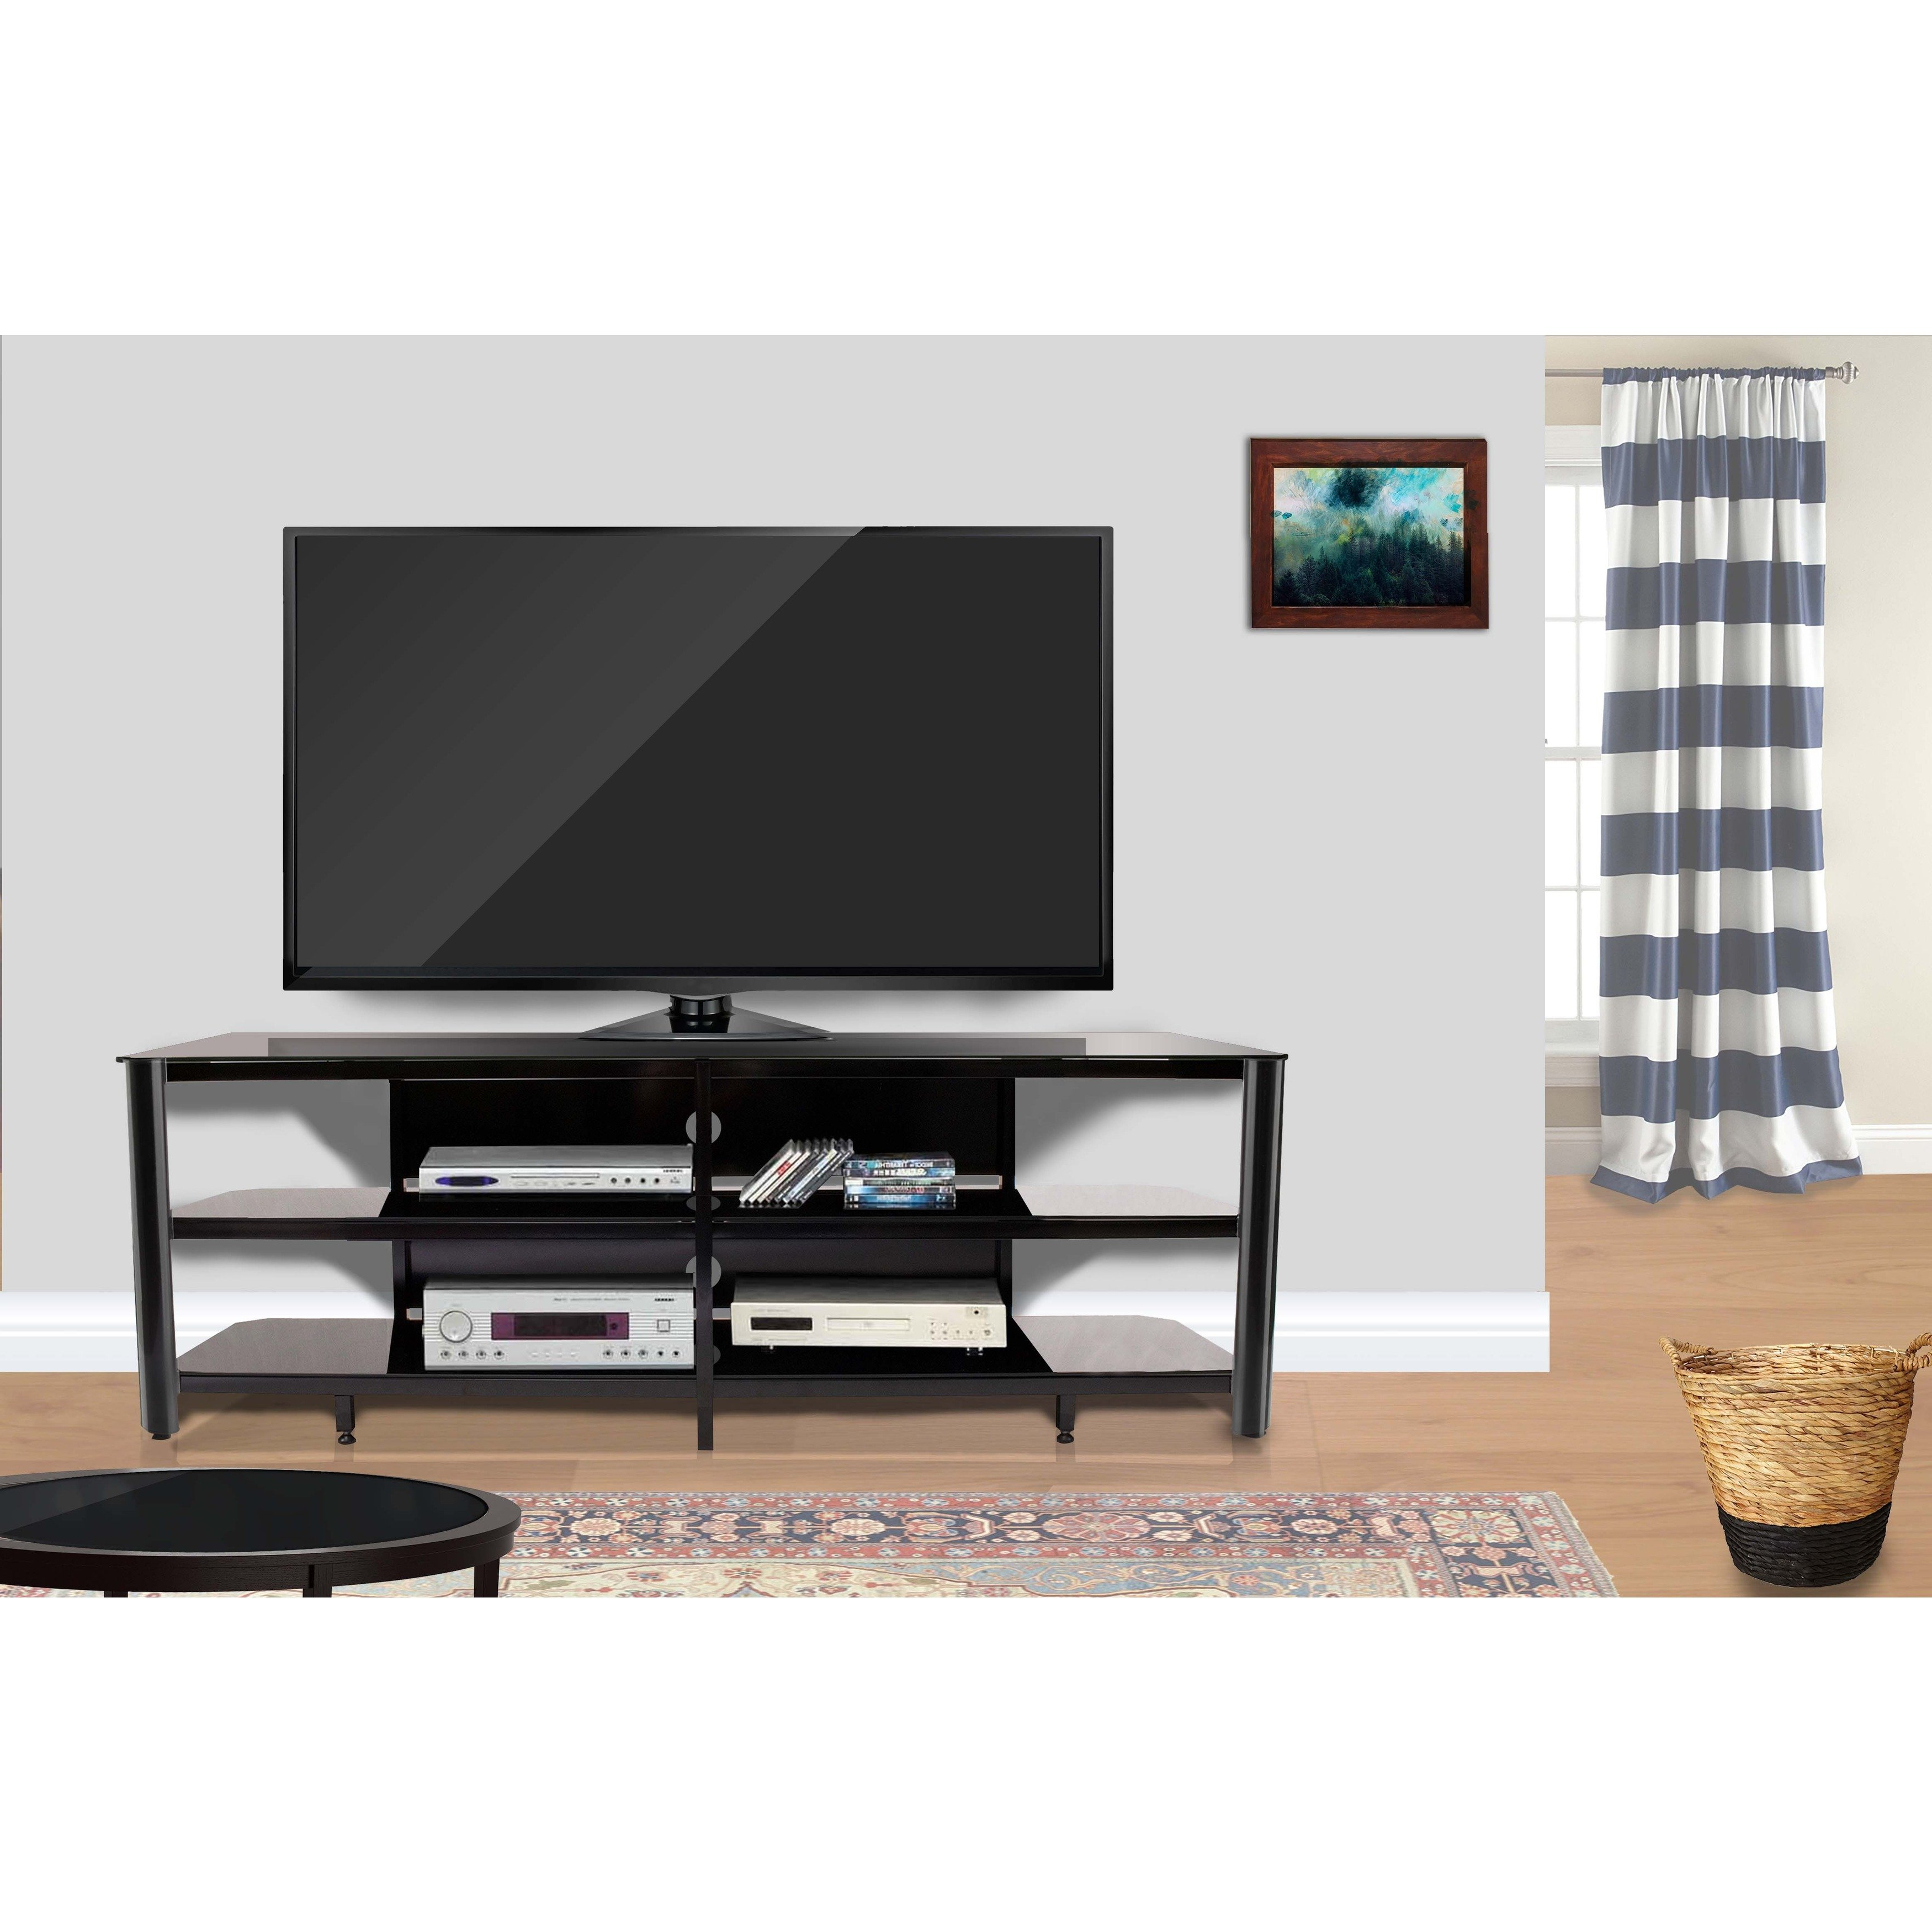 Well Known Oxford 60 Inch Tv Stands Within Shop Fold 'n' Snap Oxford 73 Inch Black Innovex Tv Stand – Free (View 4 of 20)